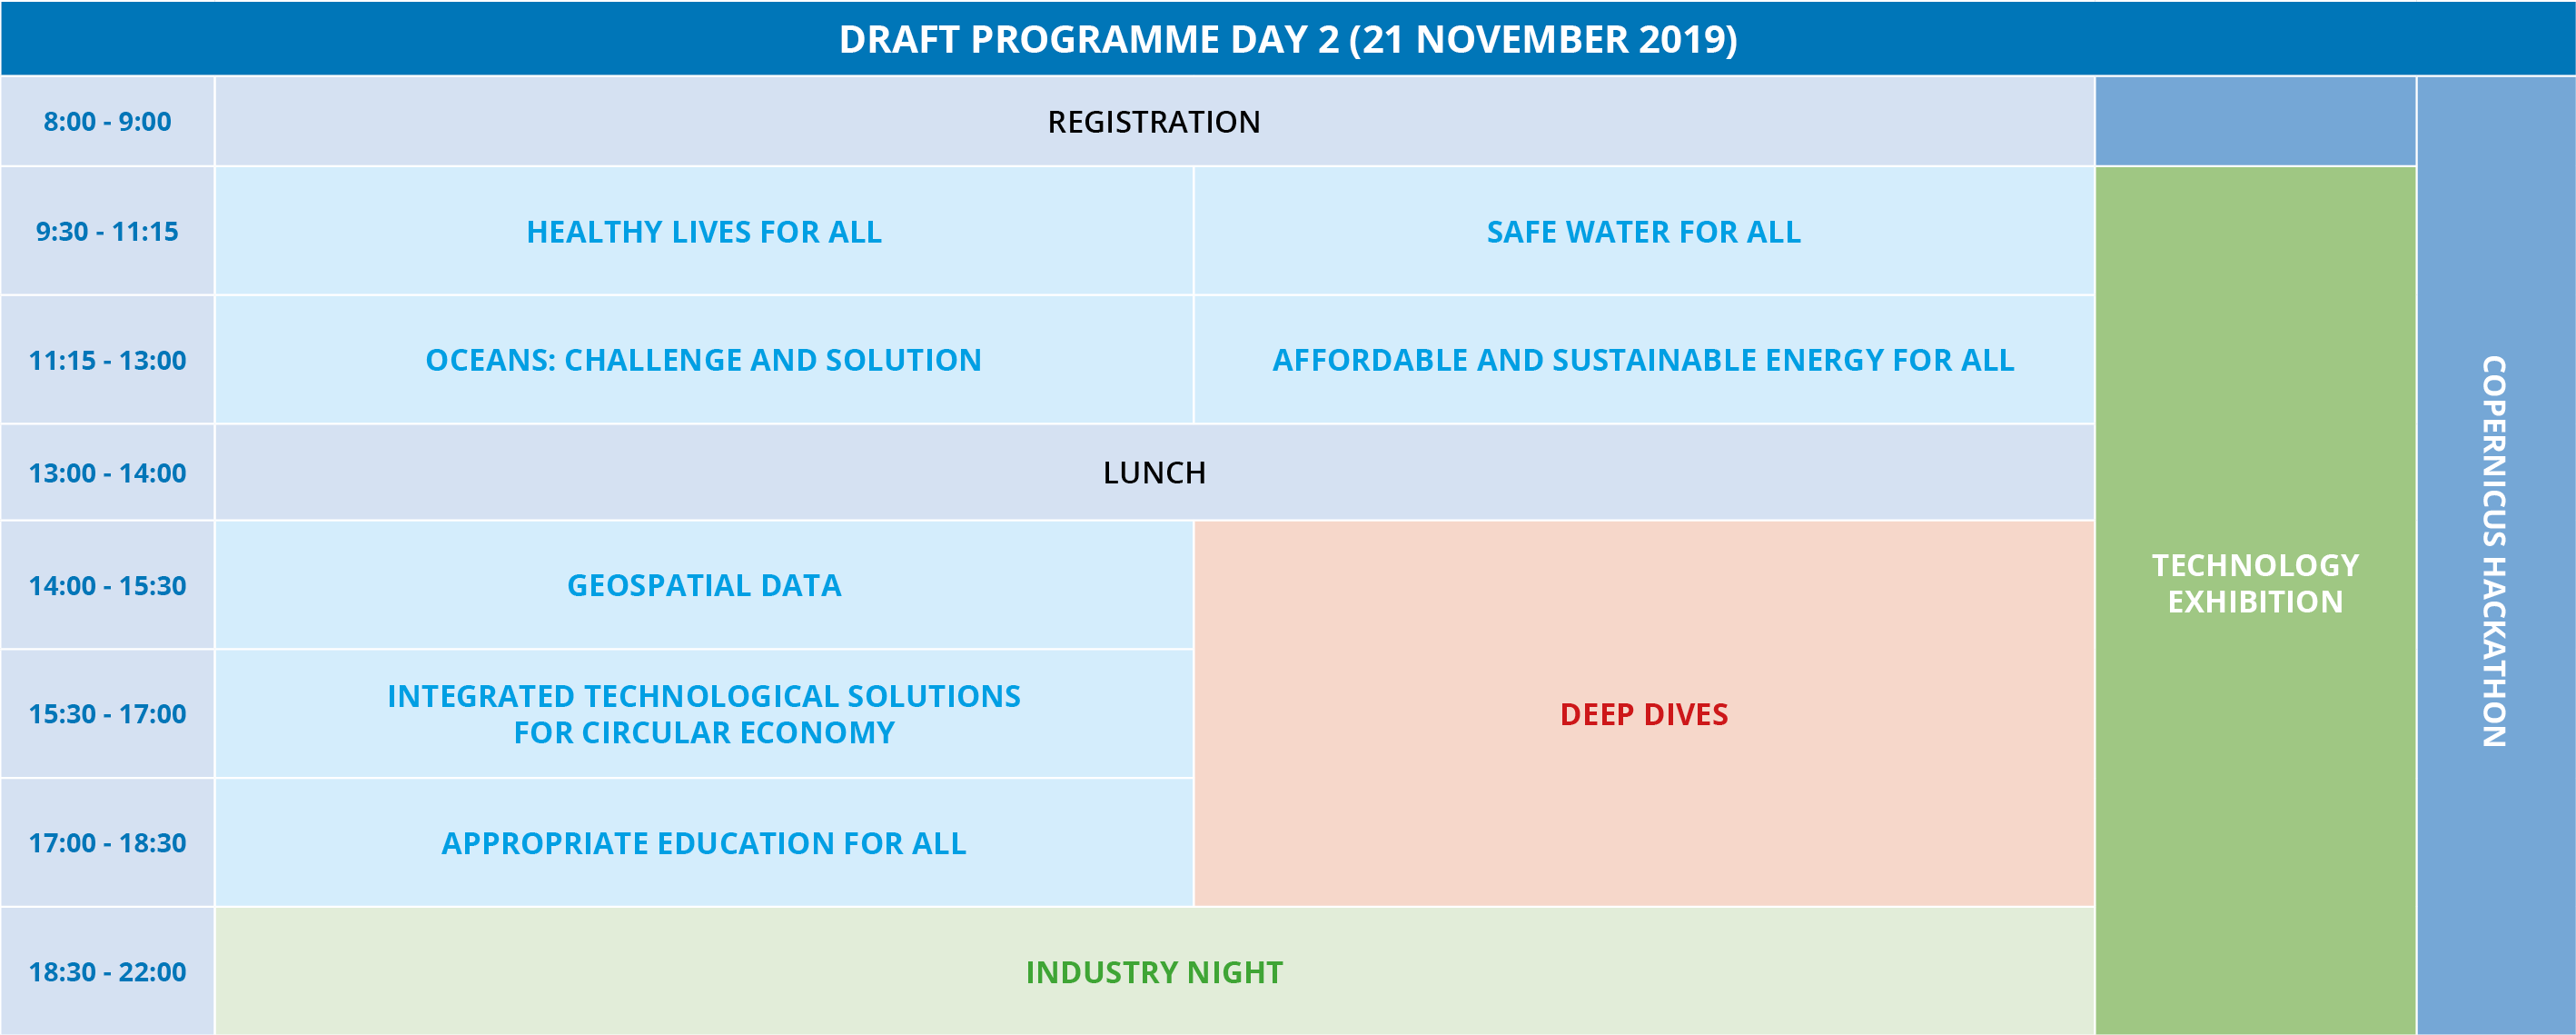 G-STIC 2019 Programme Day 2